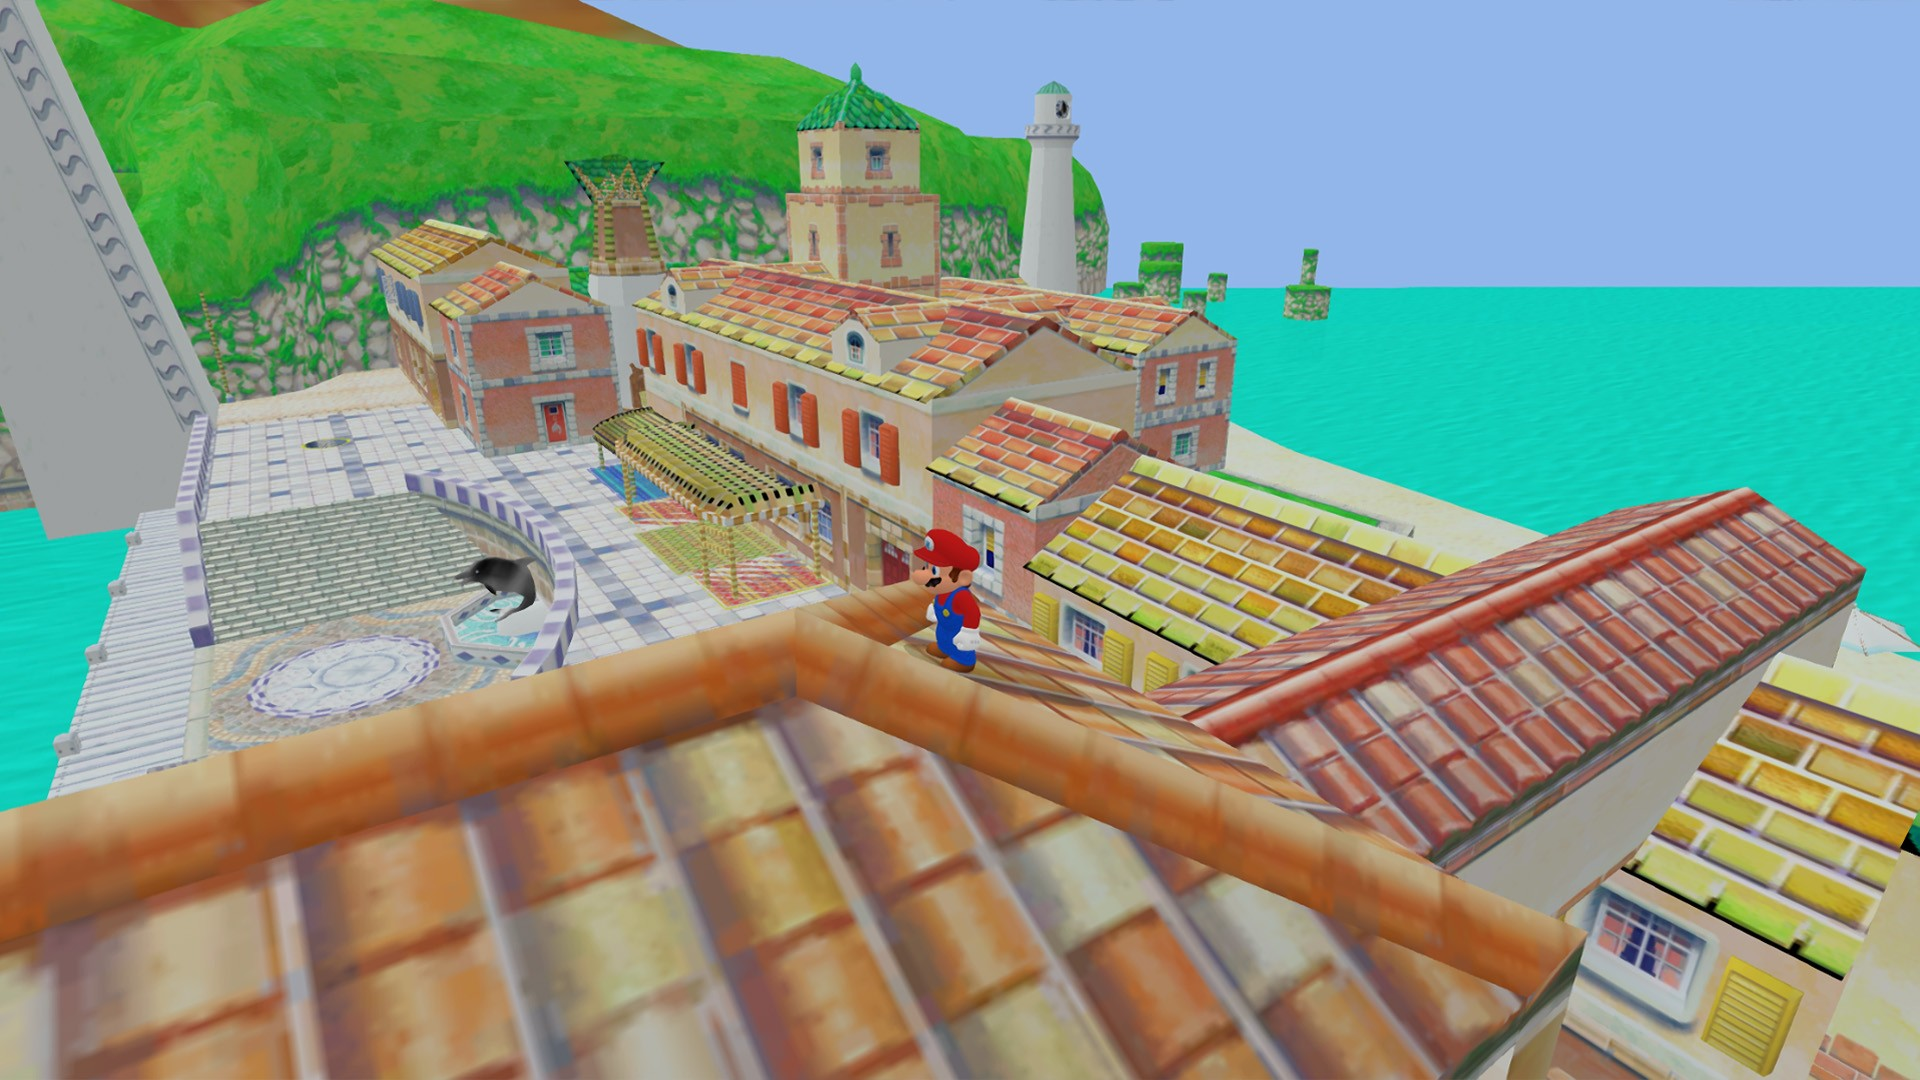 Game screenshot: 3D platforming on rooftops. Hills & terrain with a sewer & docks.